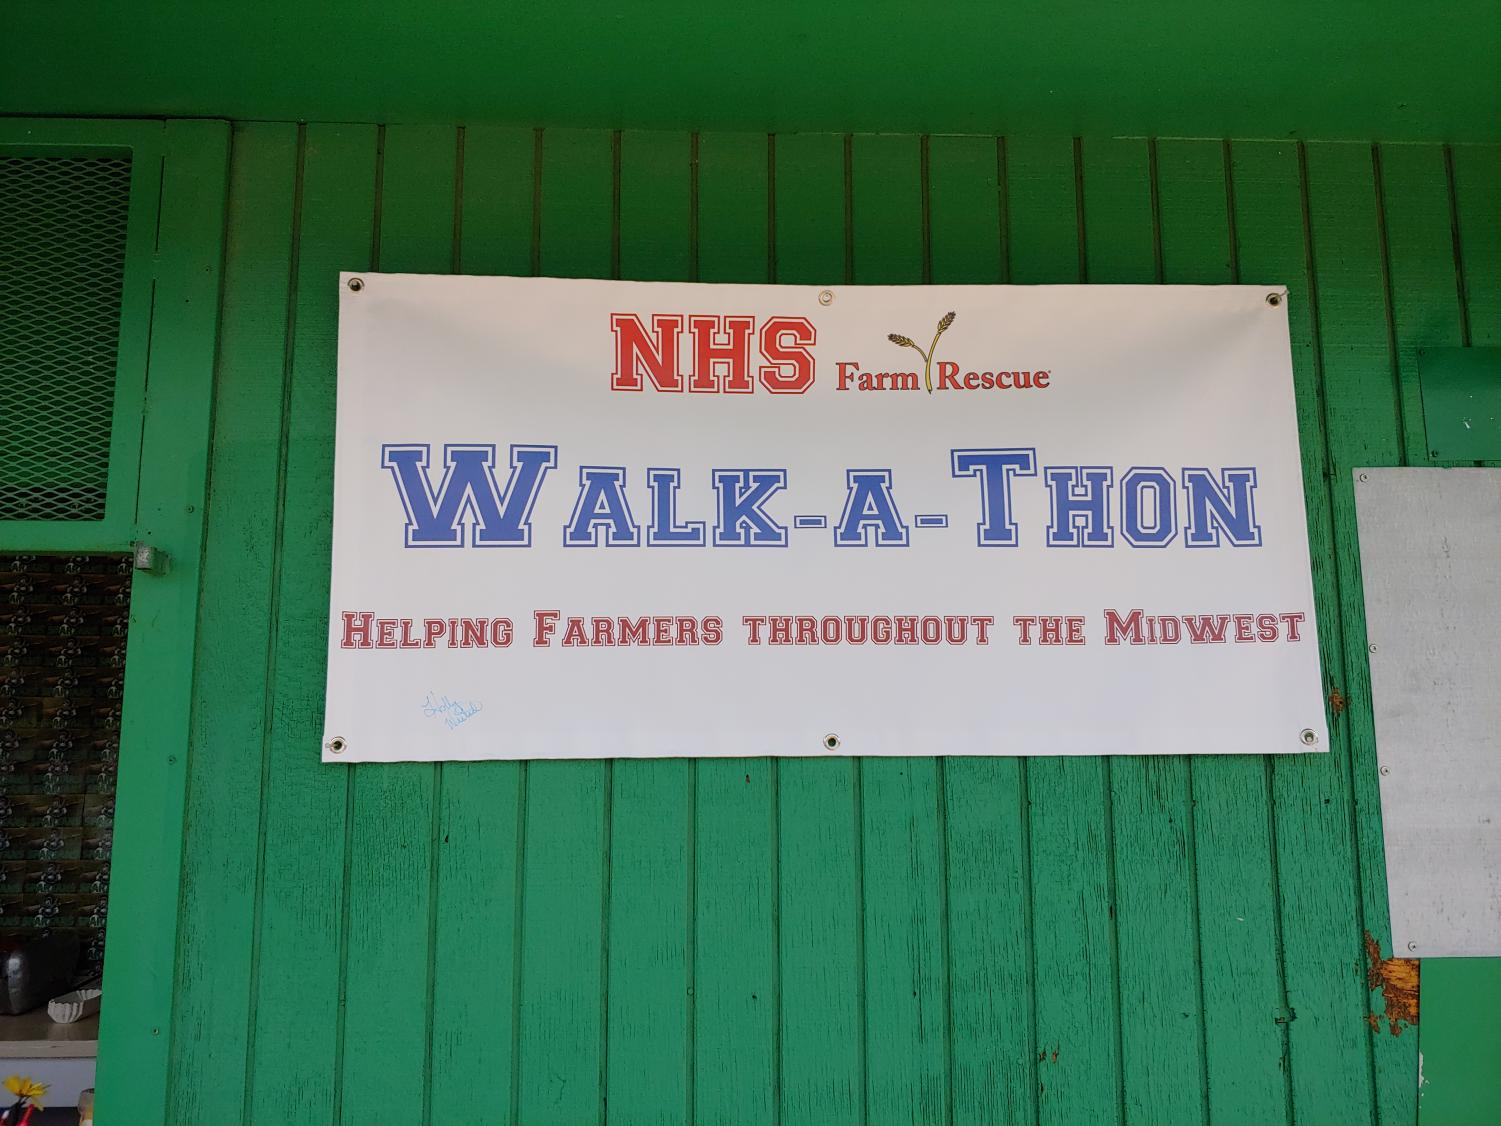 Science teacher Hollly Westad organized the Walk-a-Thon to raise money for farmers thoughout the midwest.